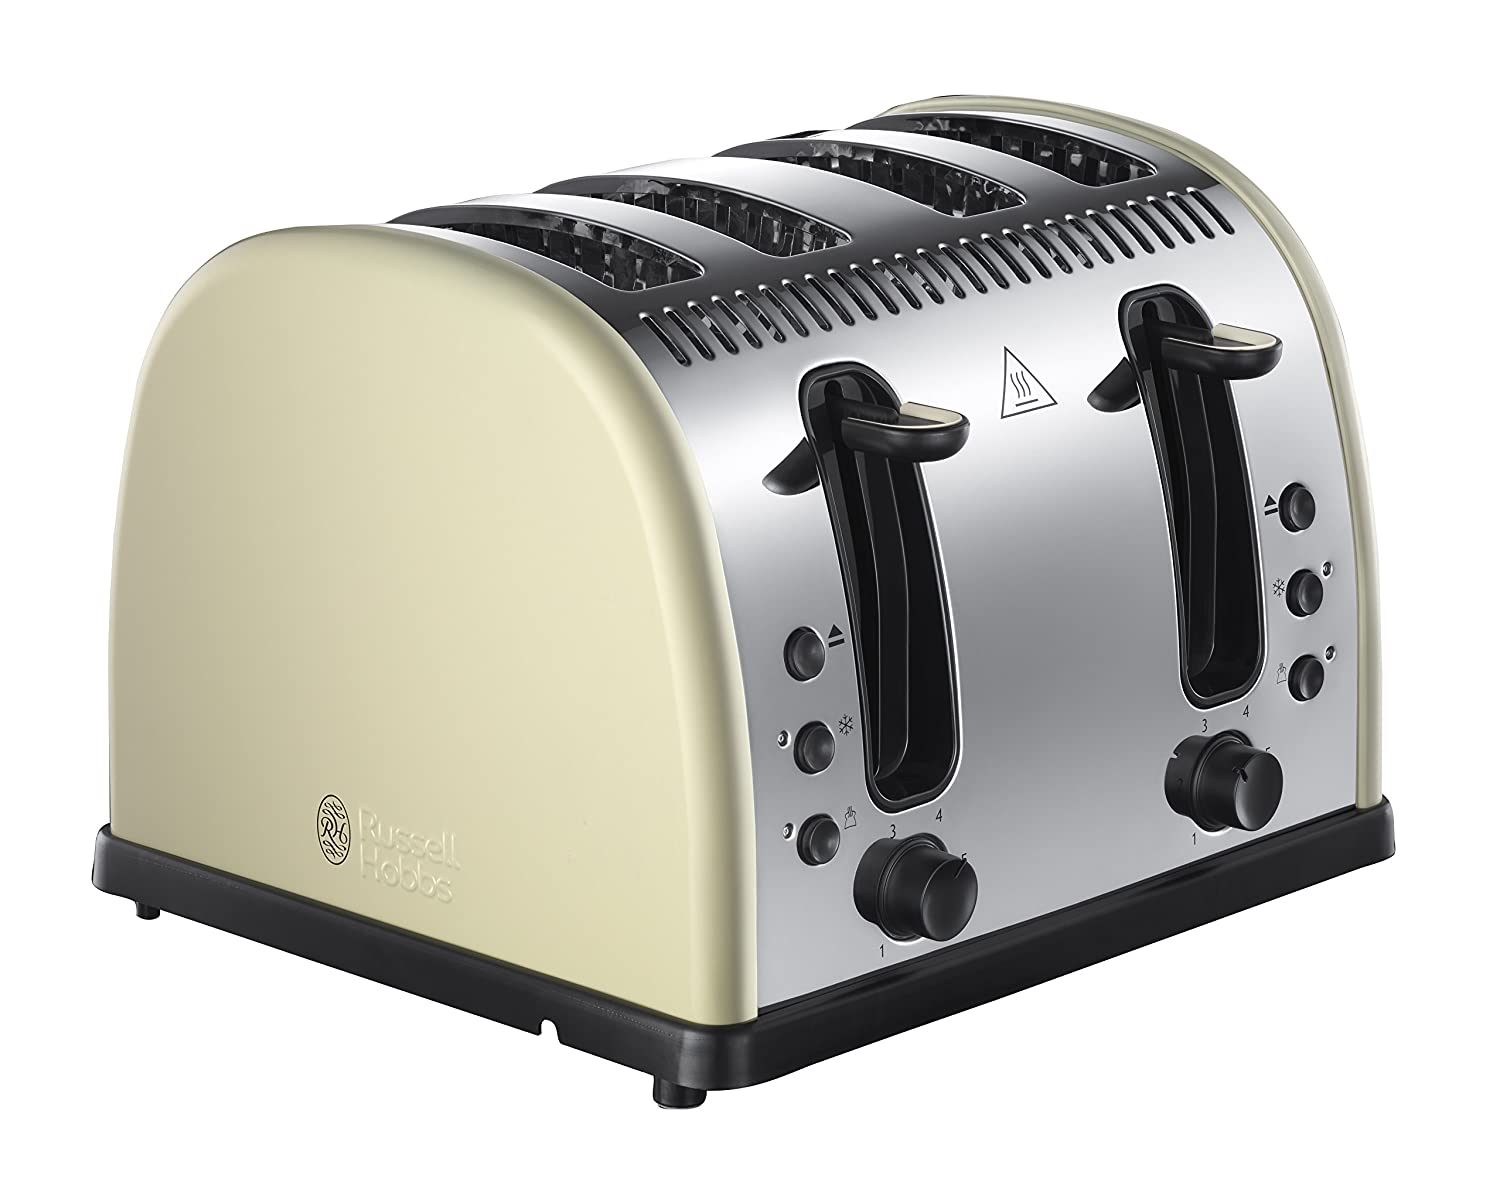 10 Best Russell Hobbs 2-Slice Toaster Reviews 2016-2017 on Flipboard